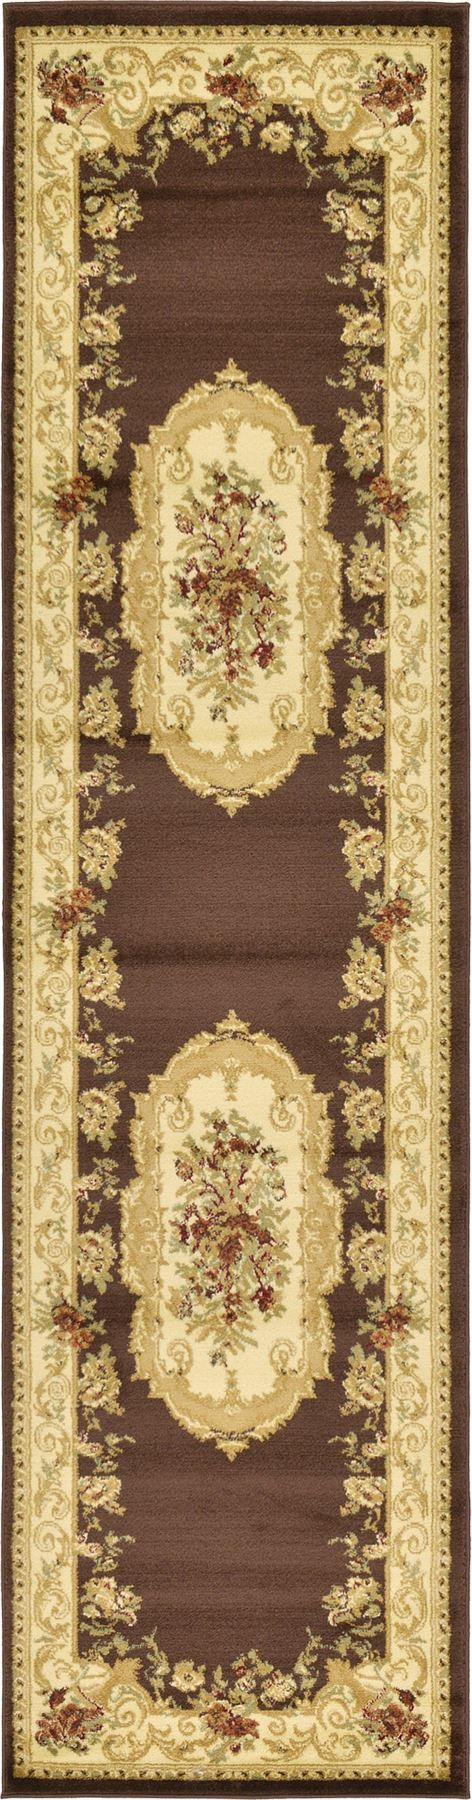 Oriental-Large-Area-Rug-Square-Traditional-Country-Round-Carpet-Medallion-Small thumbnail 18